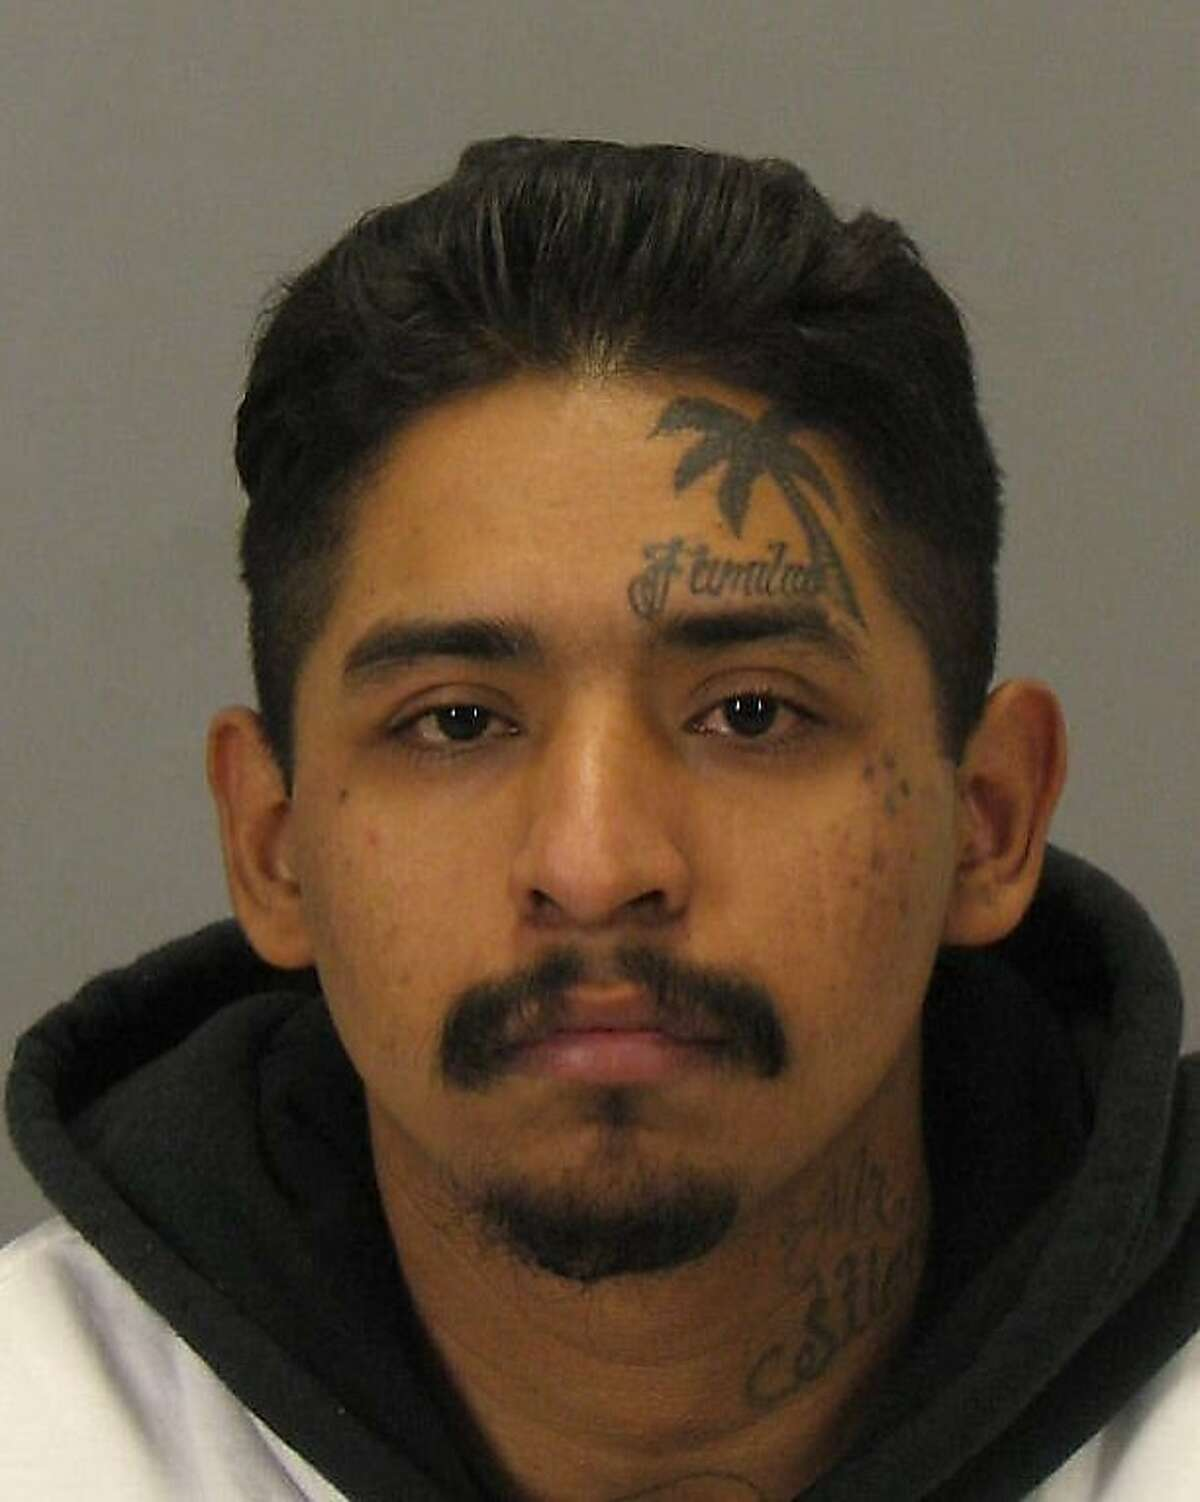 Manuel Fuentes, who allegedly ran from San Jose police and produced a gun from his waistband Dec. 16, 2011.